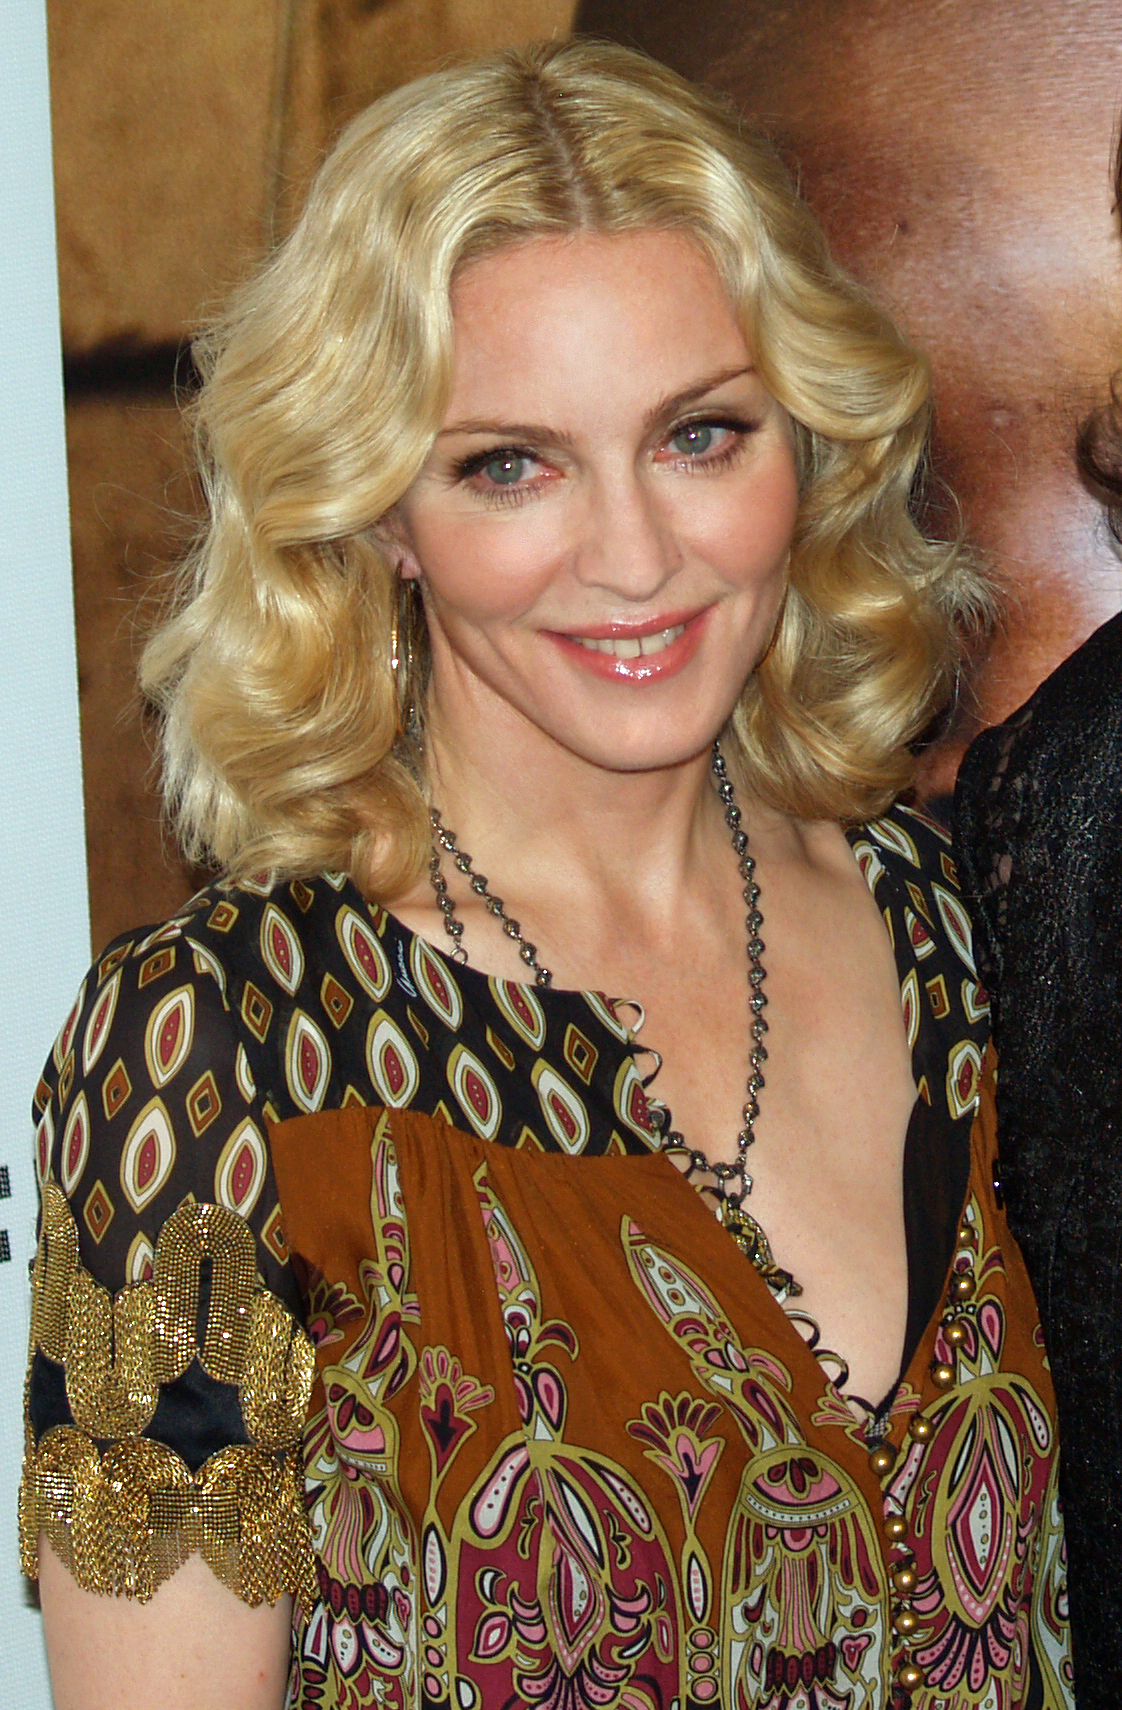 Did Madonna have plastic surgery just for the 2011 Oscars? The